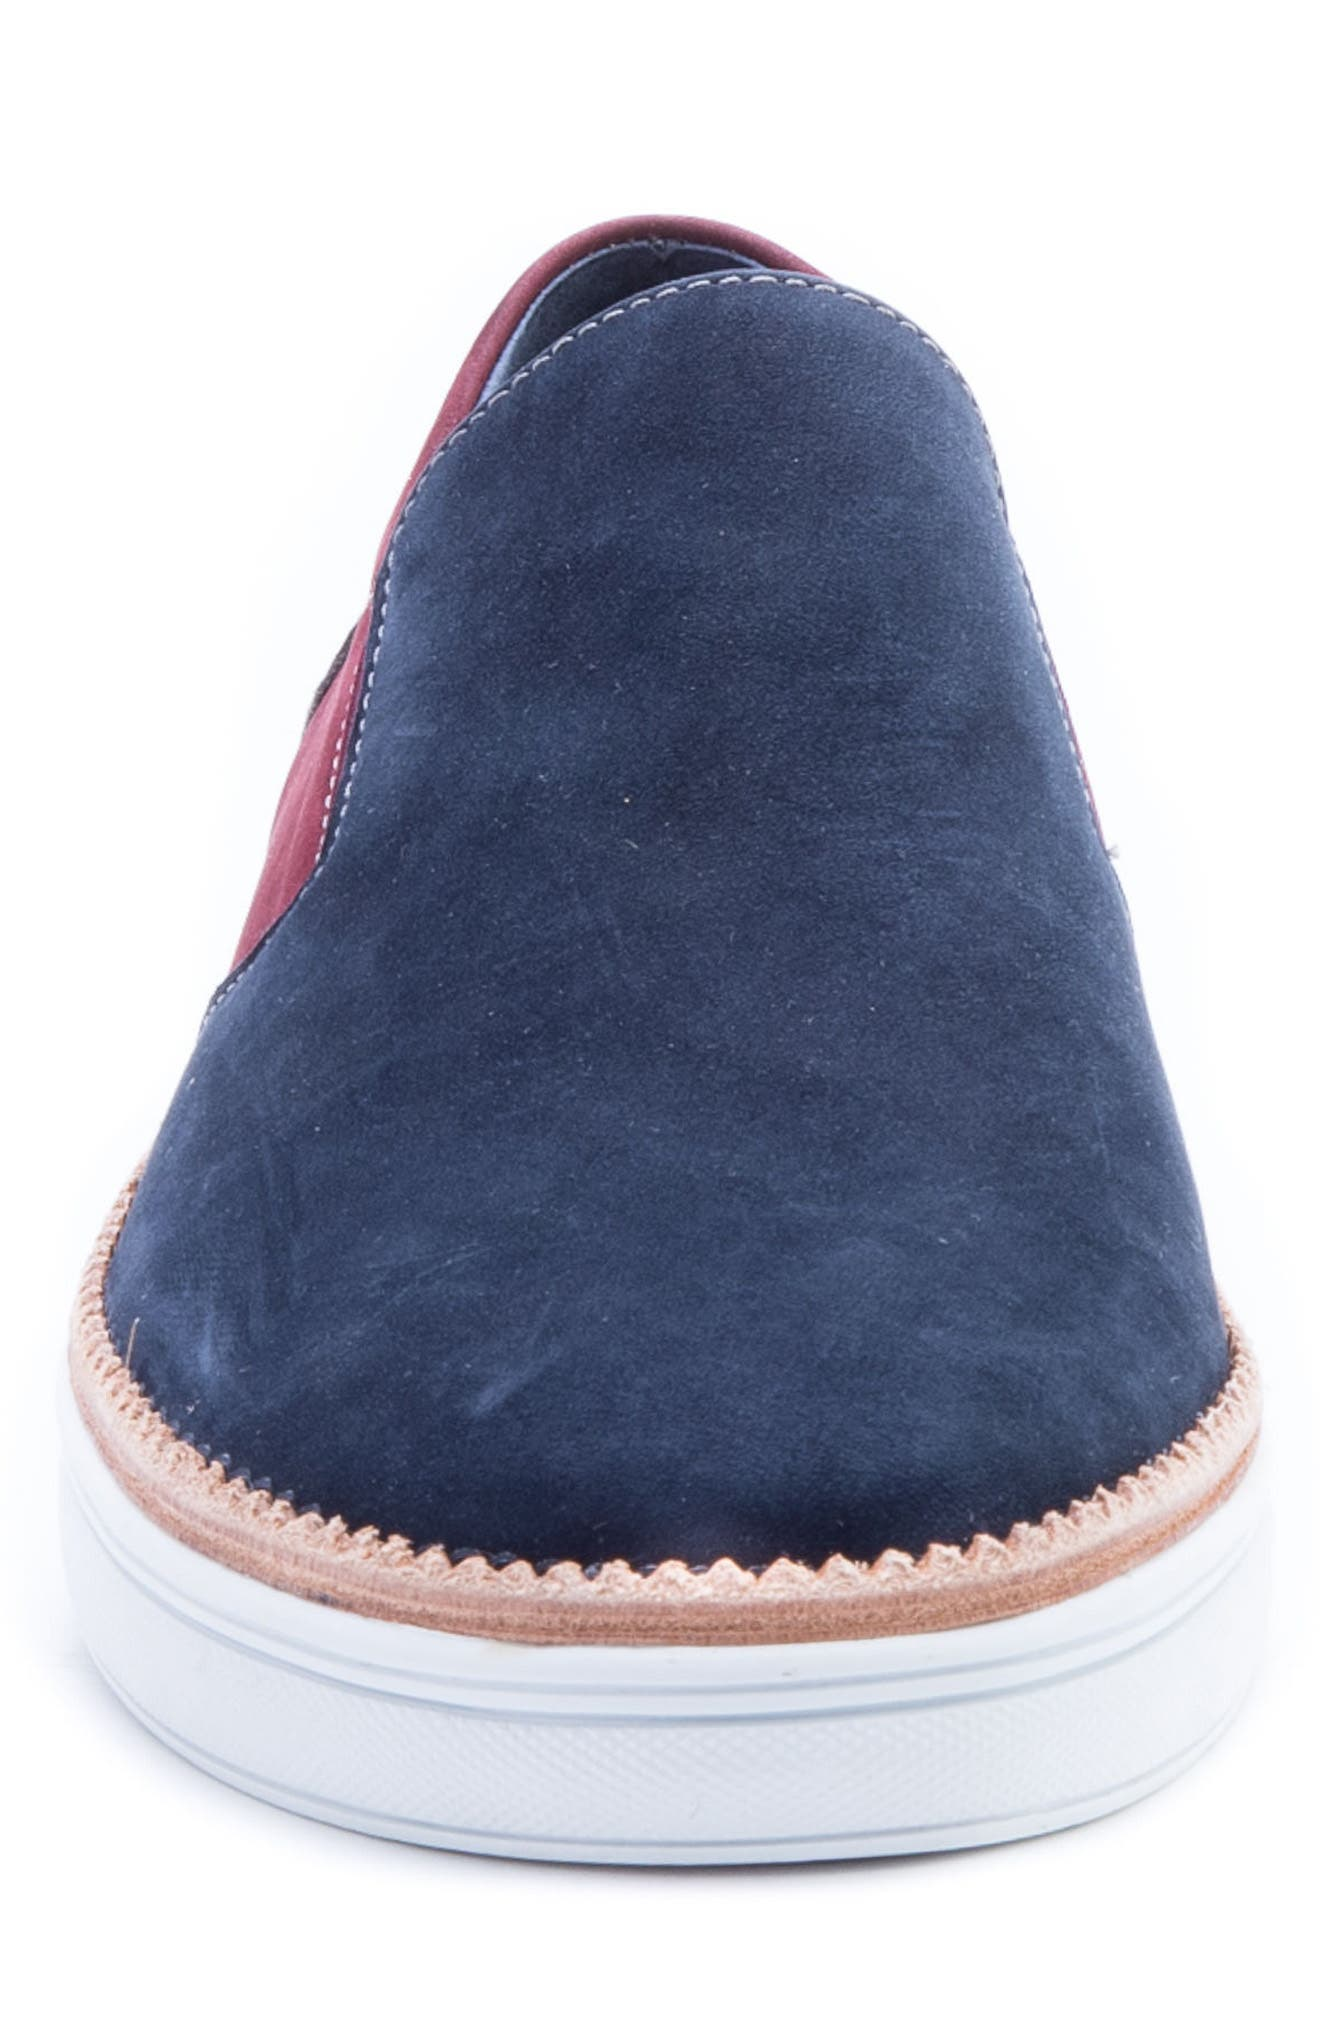 Rivera Colorblocked Slip-On Sneaker,                             Alternate thumbnail 4, color,                             Navy Suede